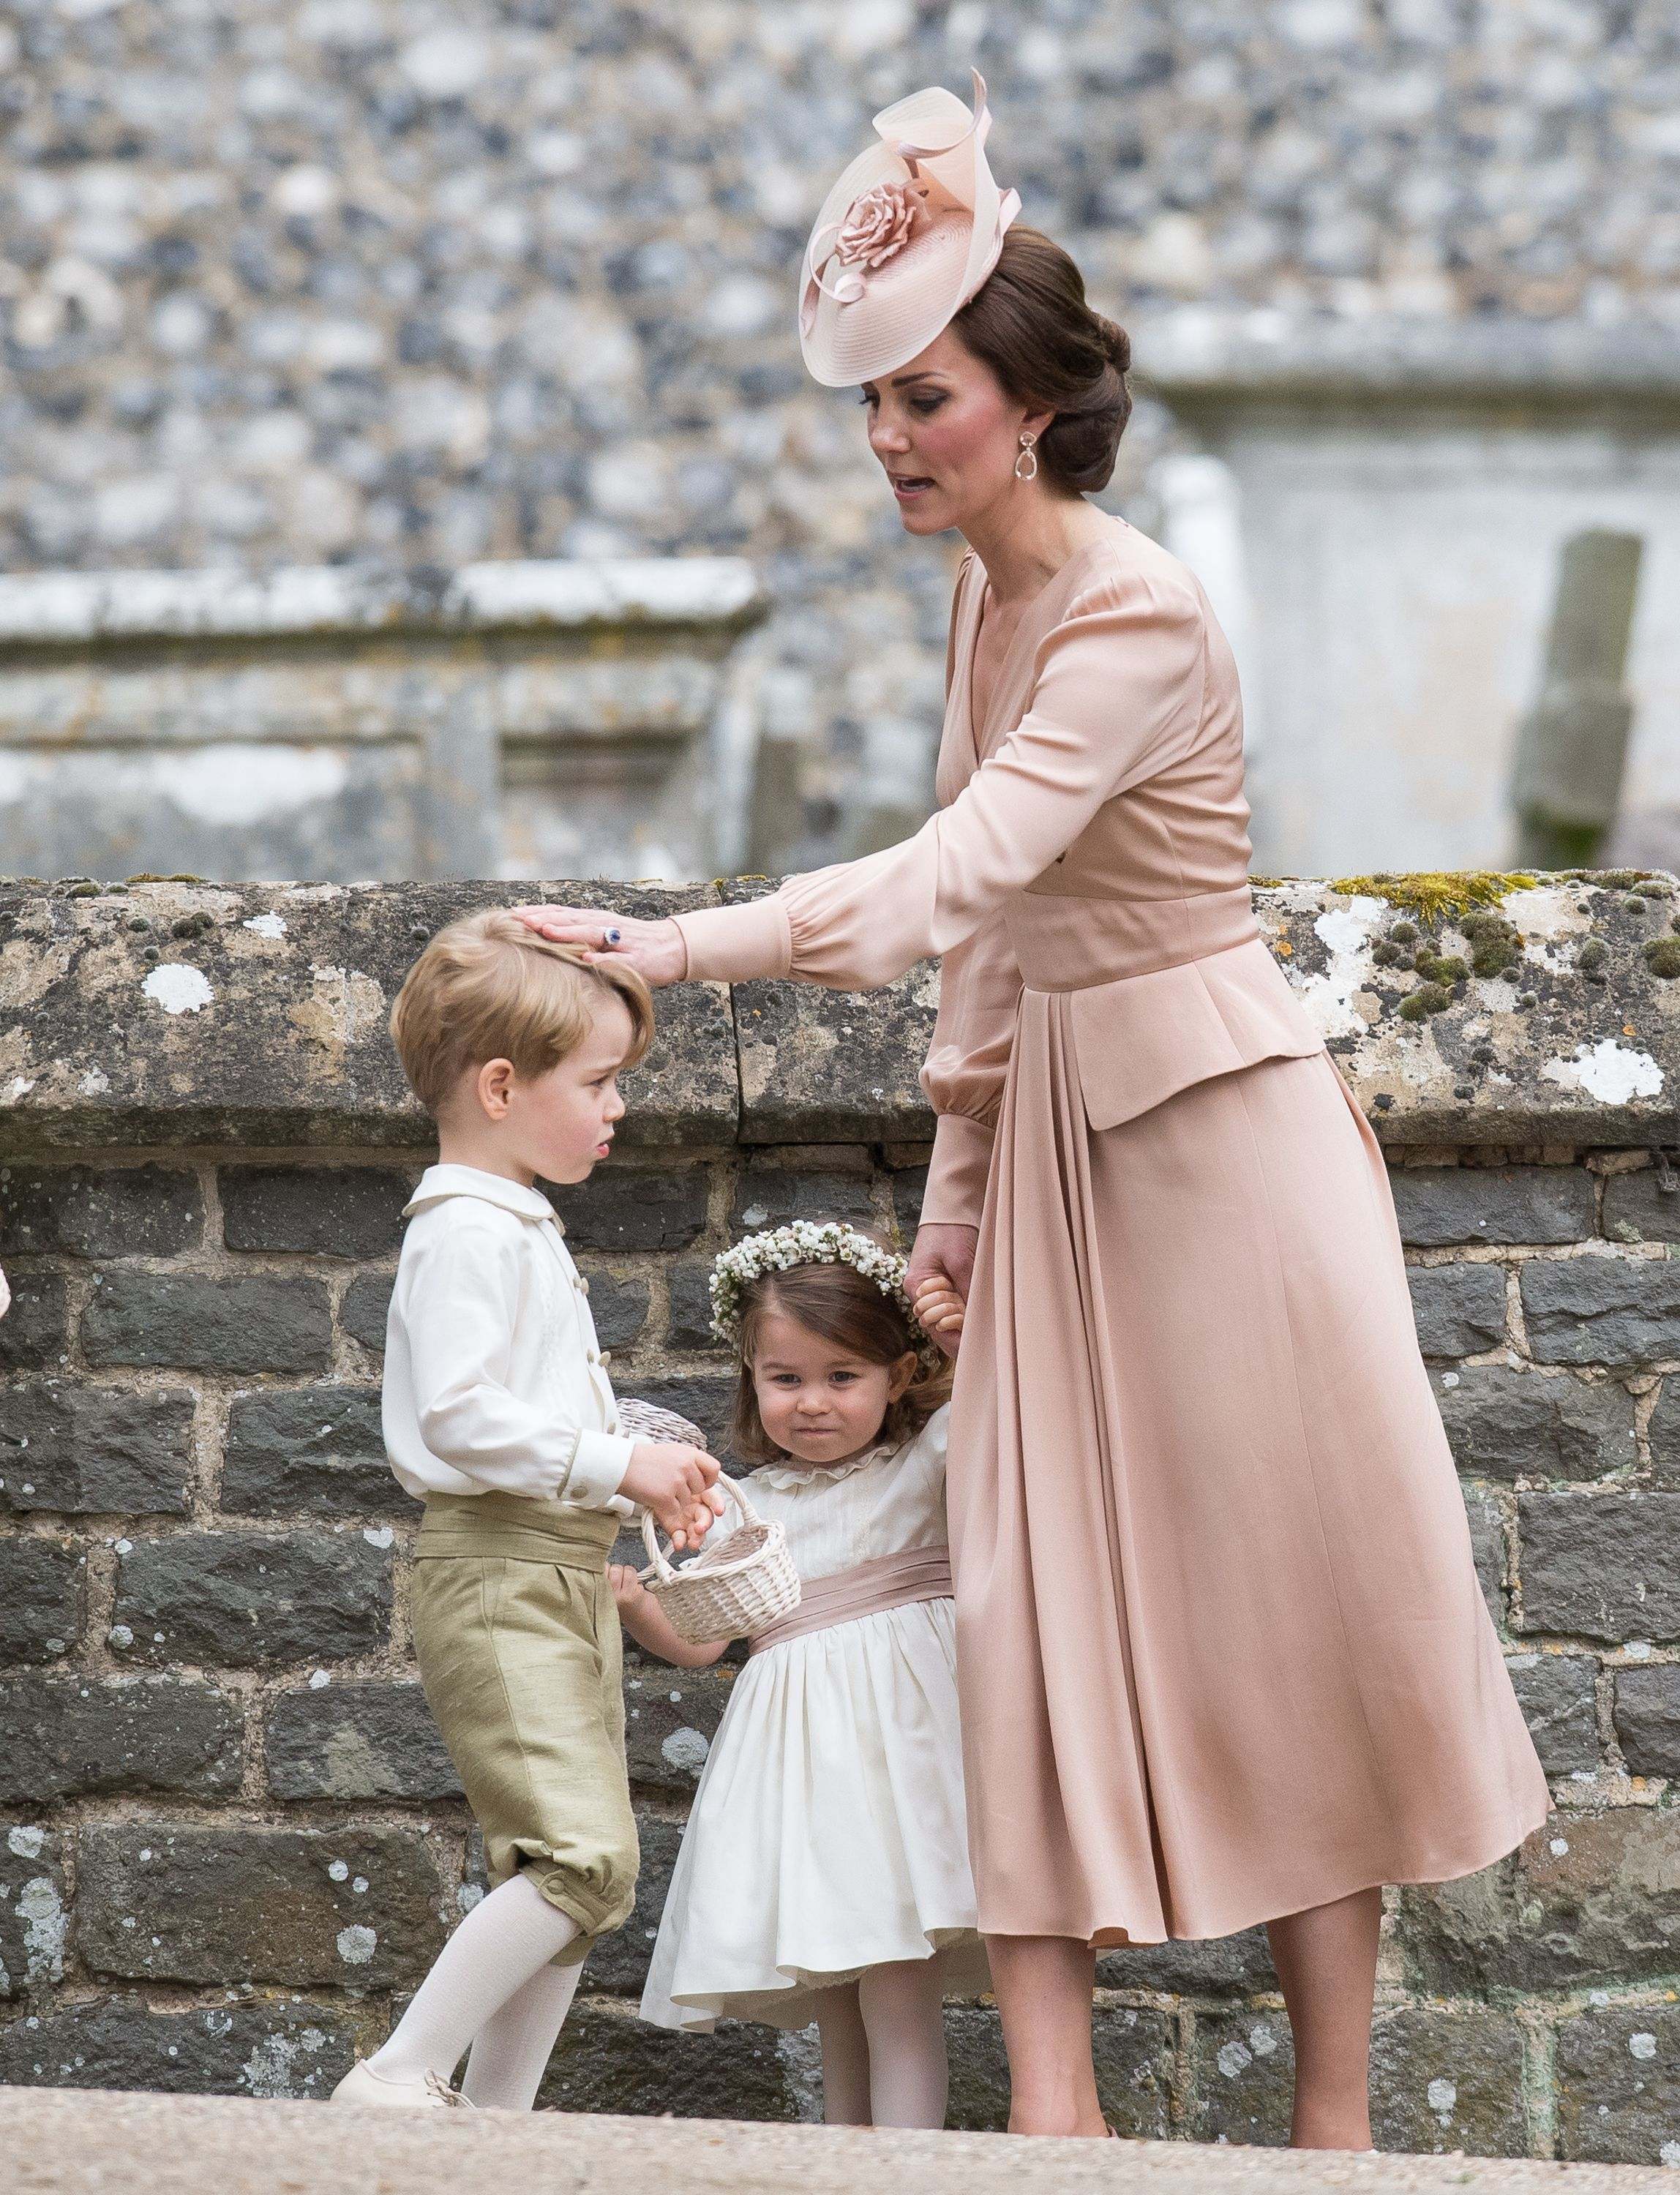 The code words Kate apparently uses when the royal kids are being naughty